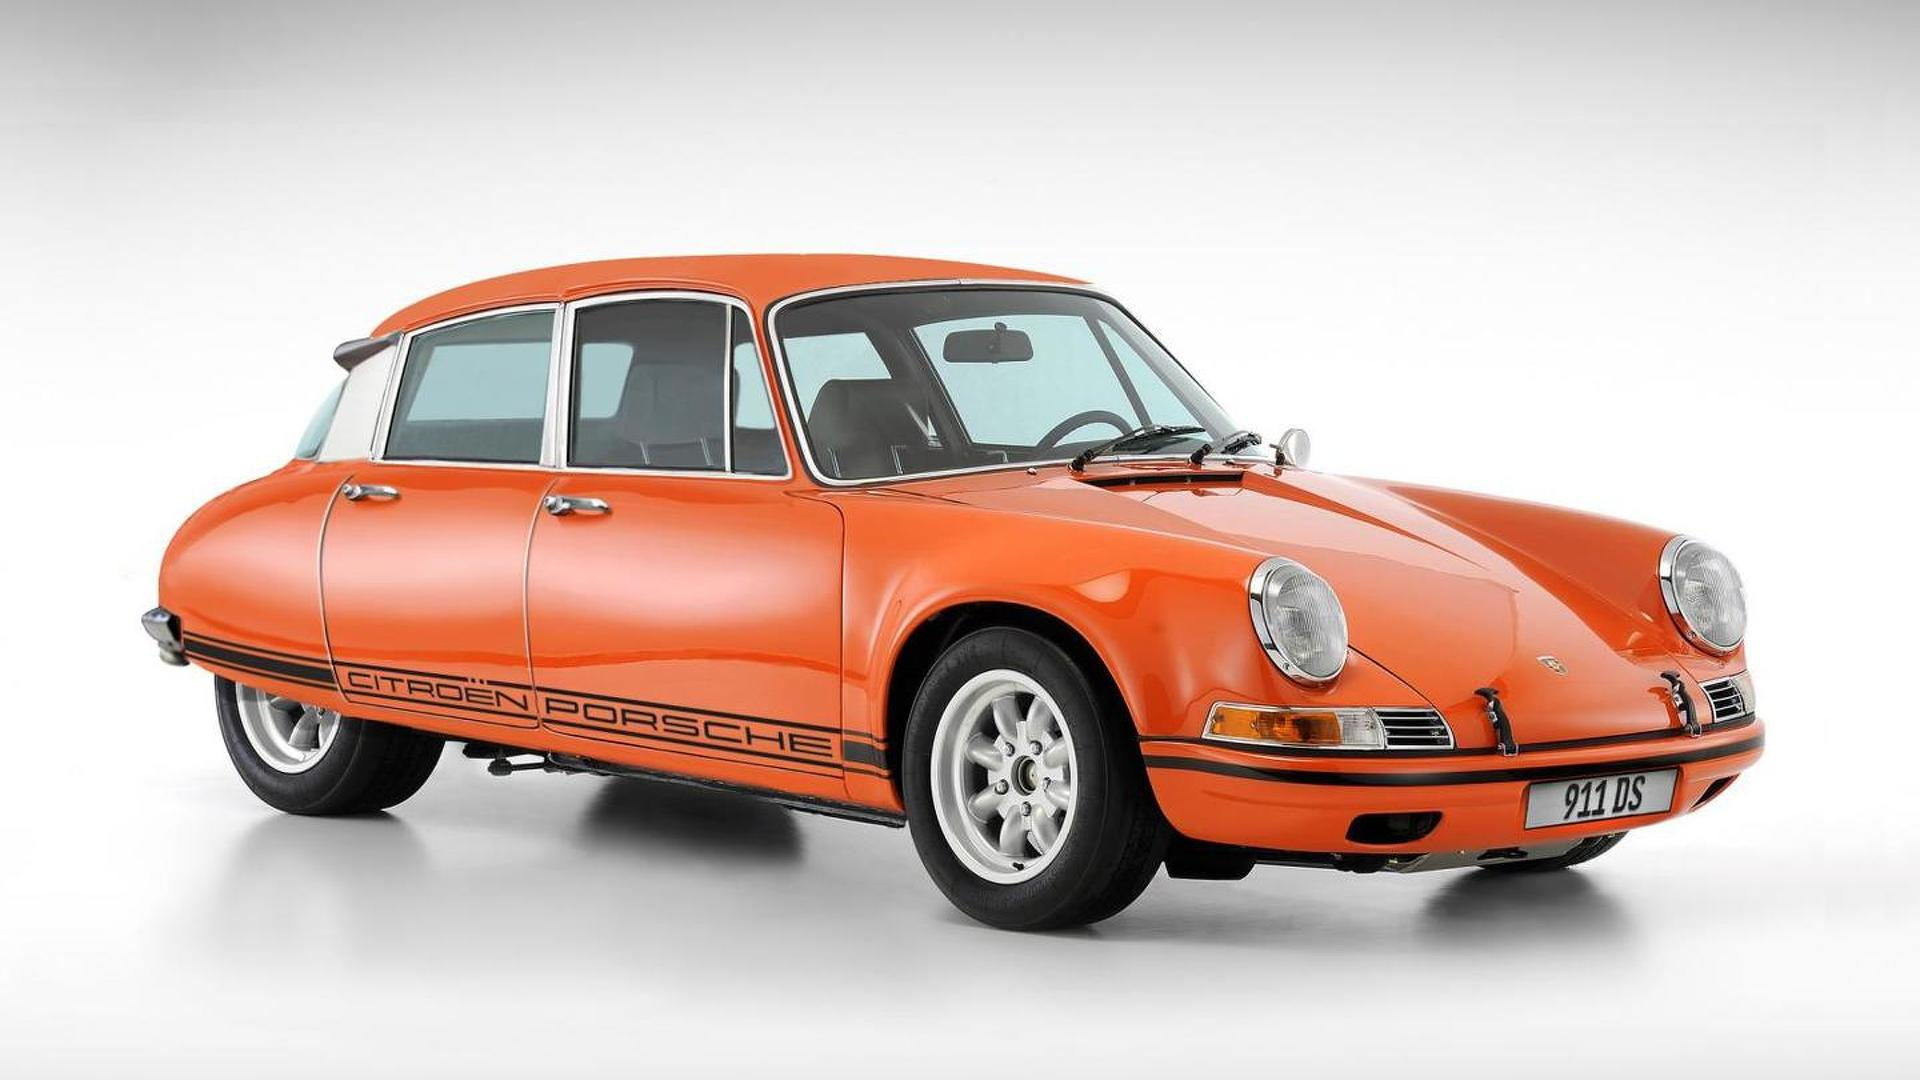 This Porsche Citroen 911 DS looks impressively real, but it's not